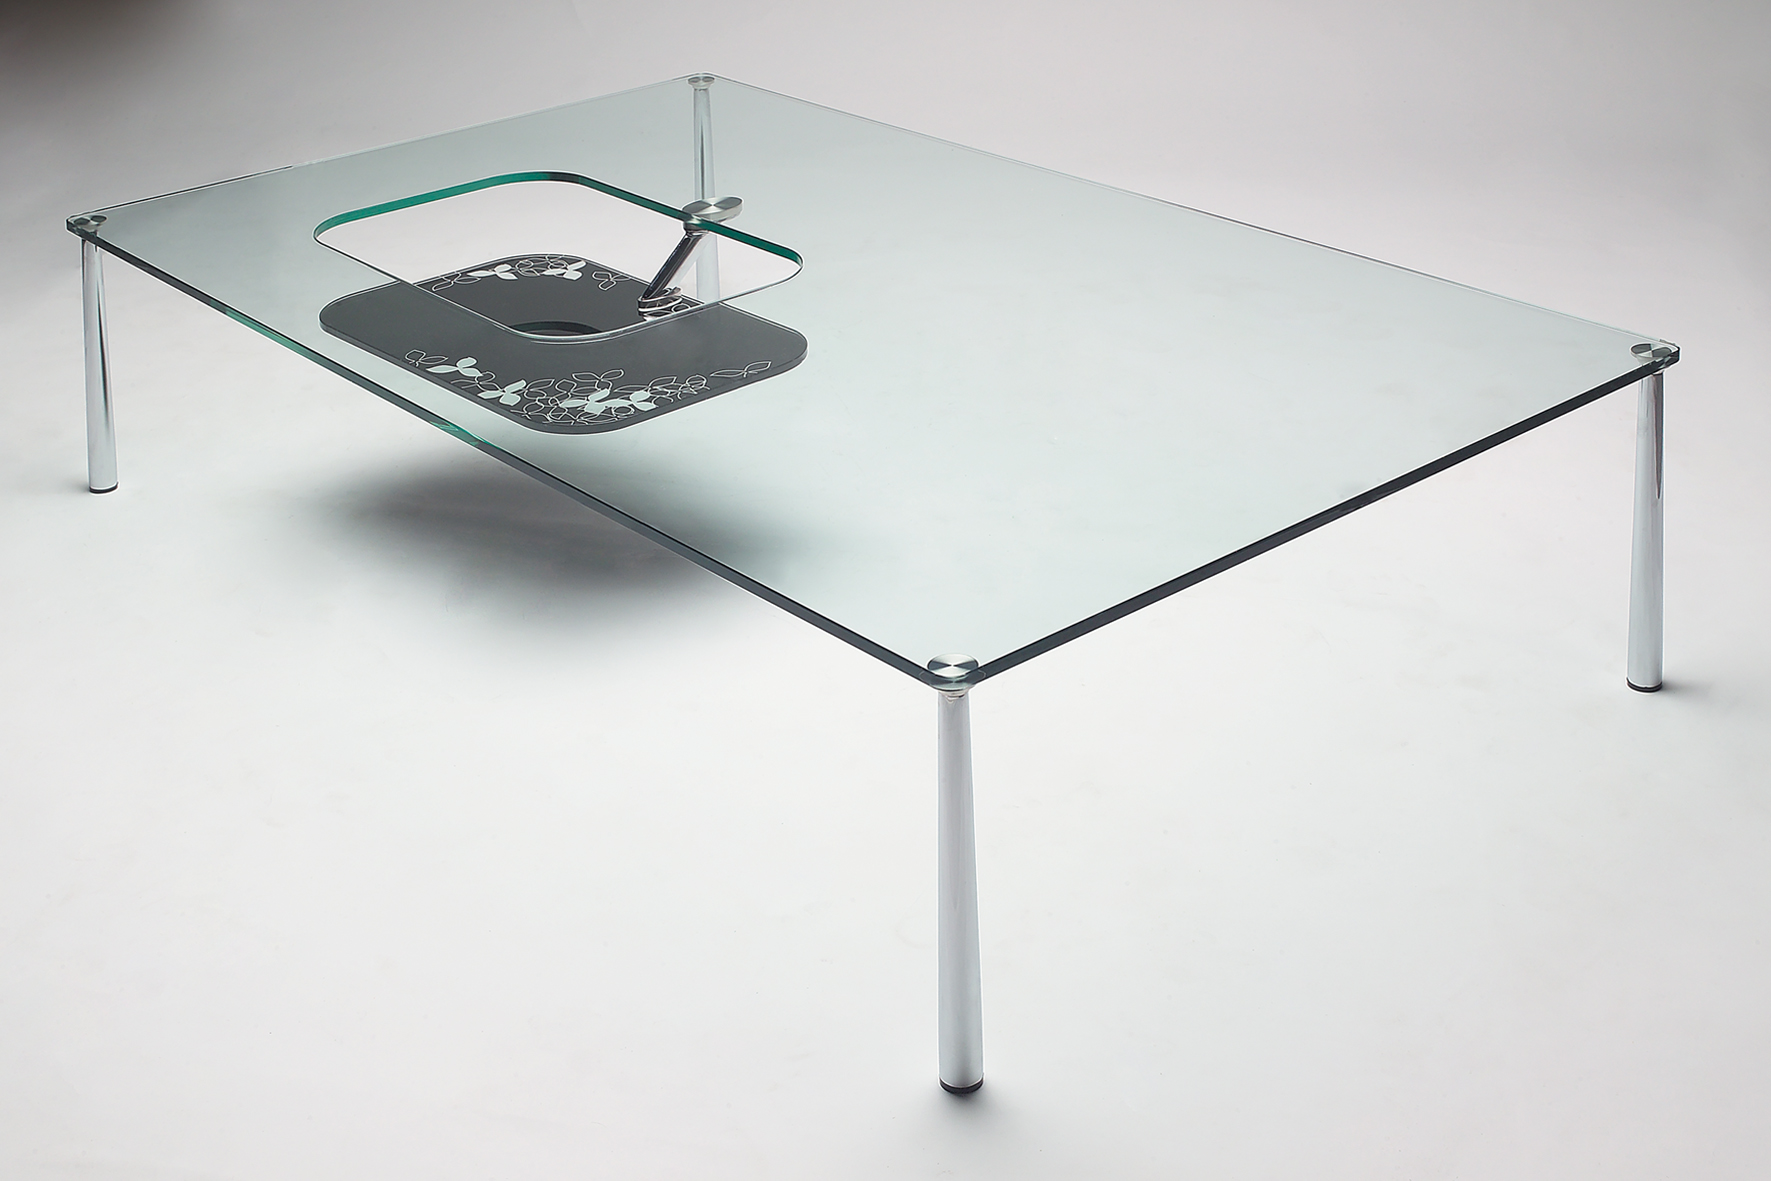 Custom Glass For Coffee Table Gallery Pictures Of